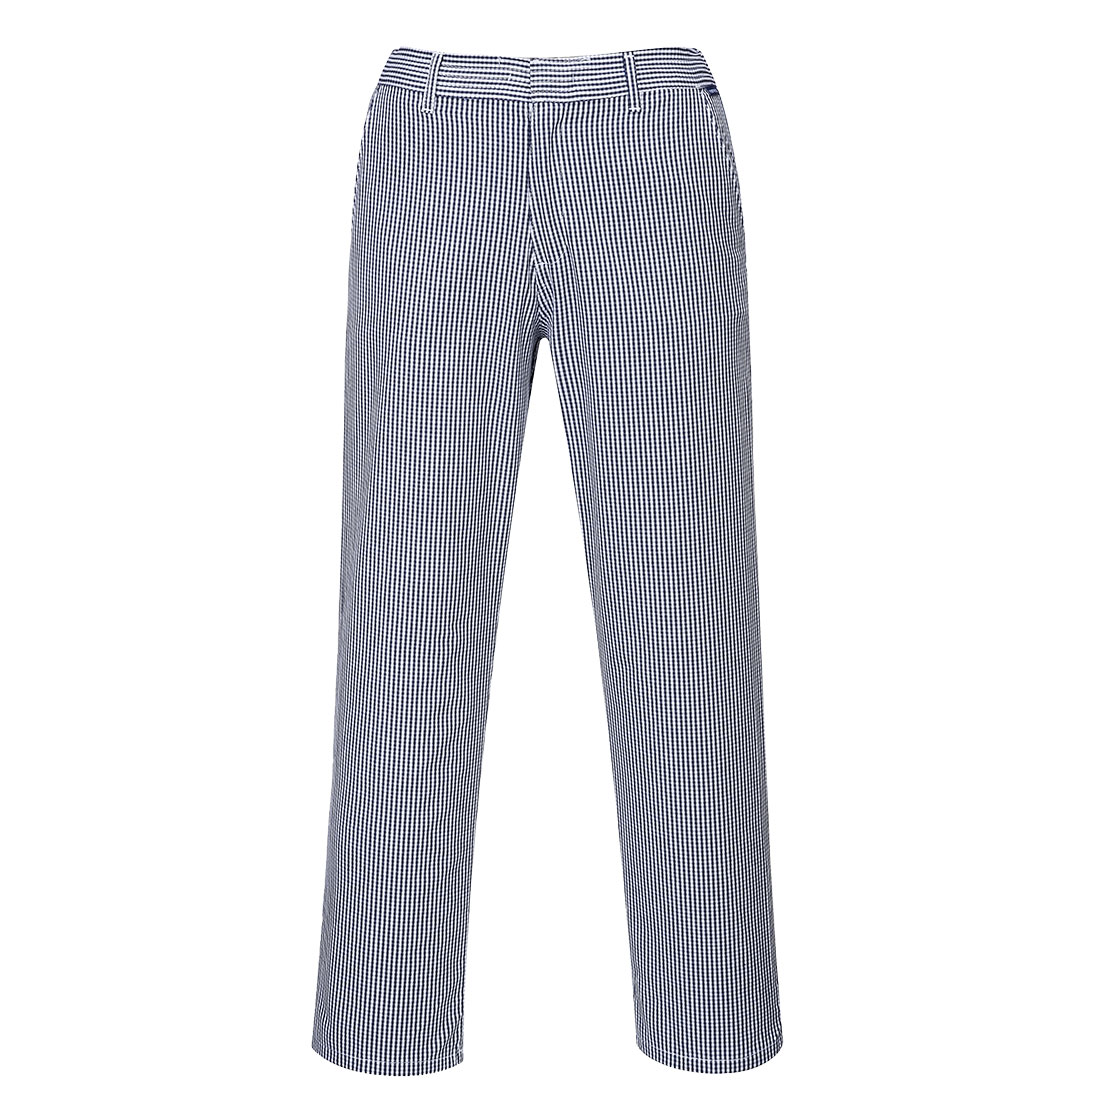 Barnet Chefs Trousers Check XSR